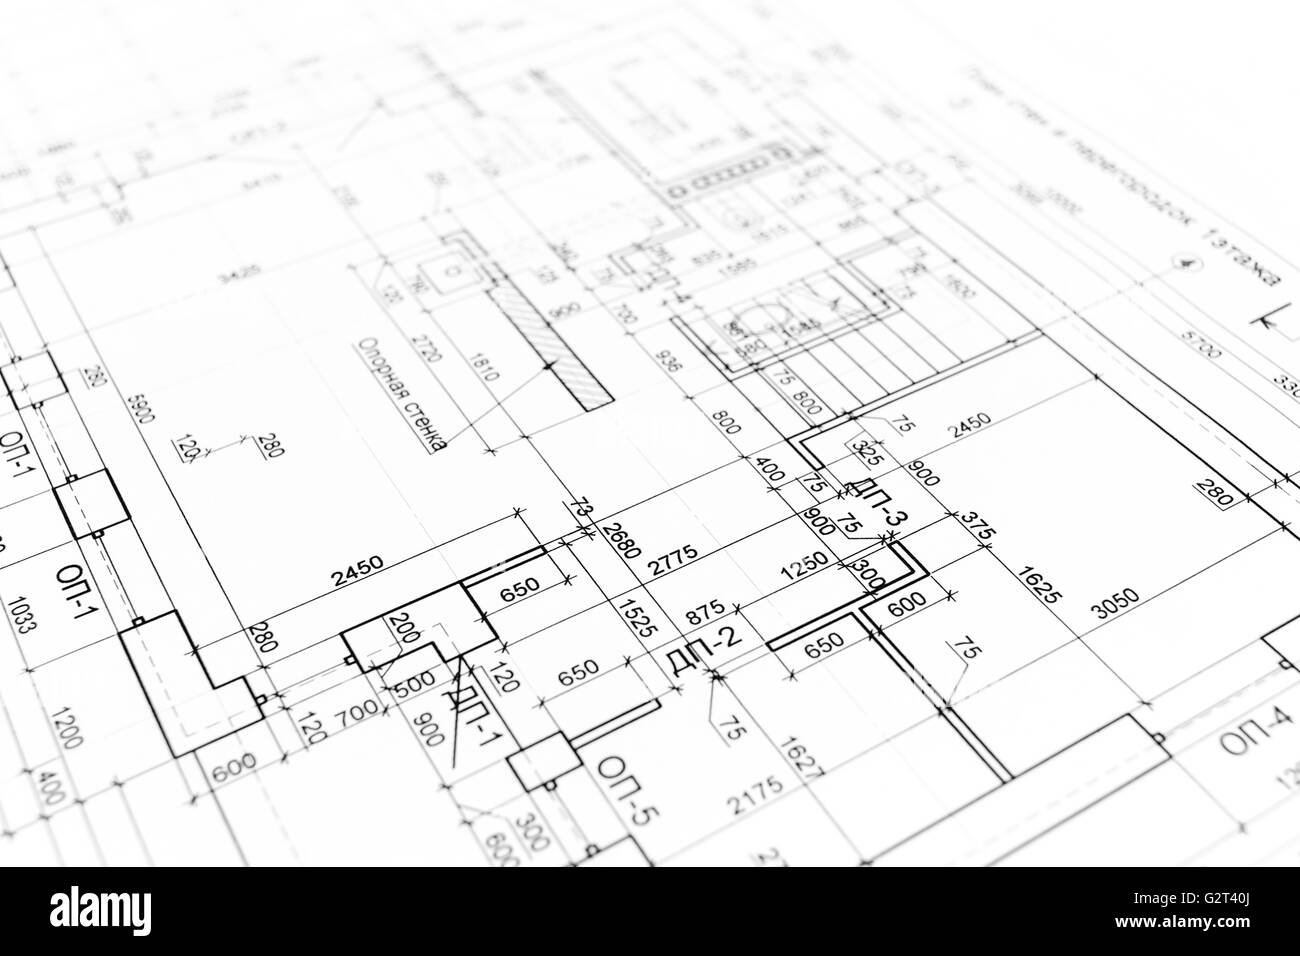 House Building Construction Plan As Background. Blueprints Series.   Stock  Image